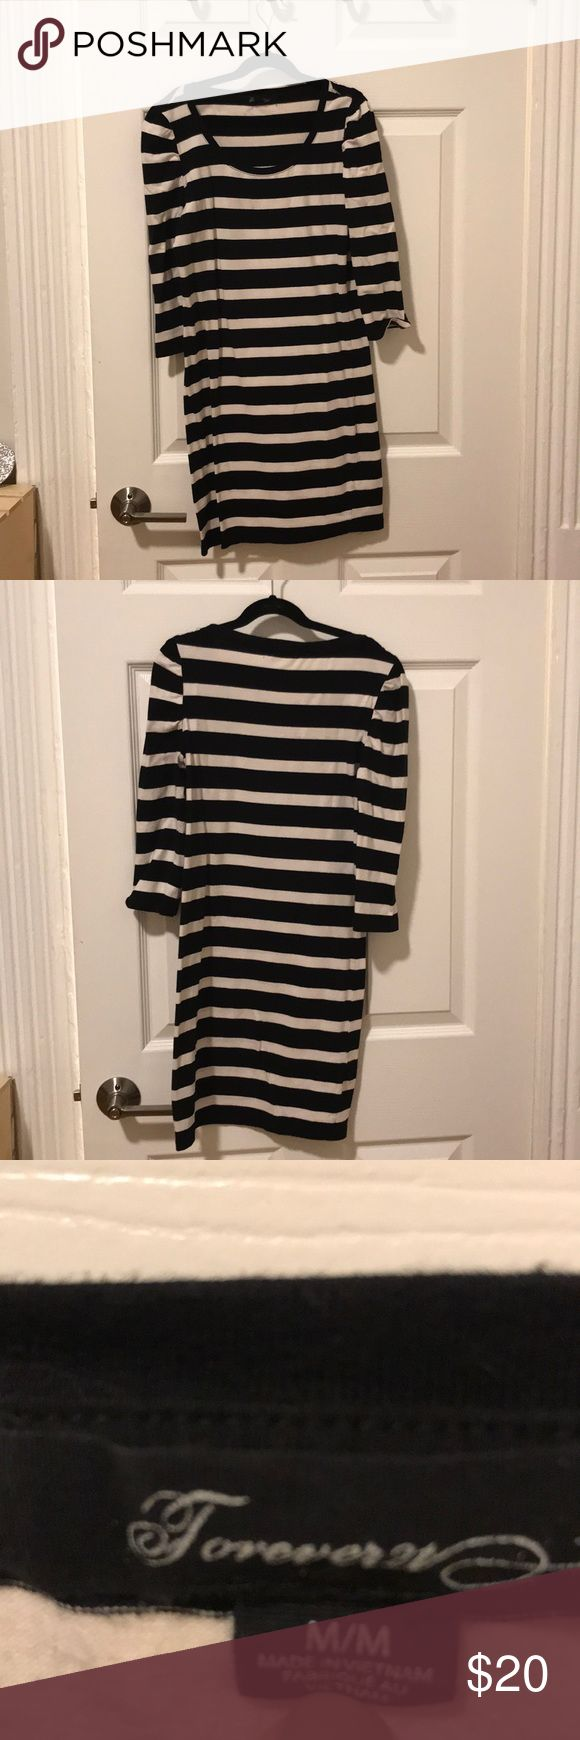 Striped Bodycon Dress M Black and white thick stripes bodycon dress from Forever 21. Size M. Fits true to size, very soft and comfortable. Forever 21 Dresses Mini